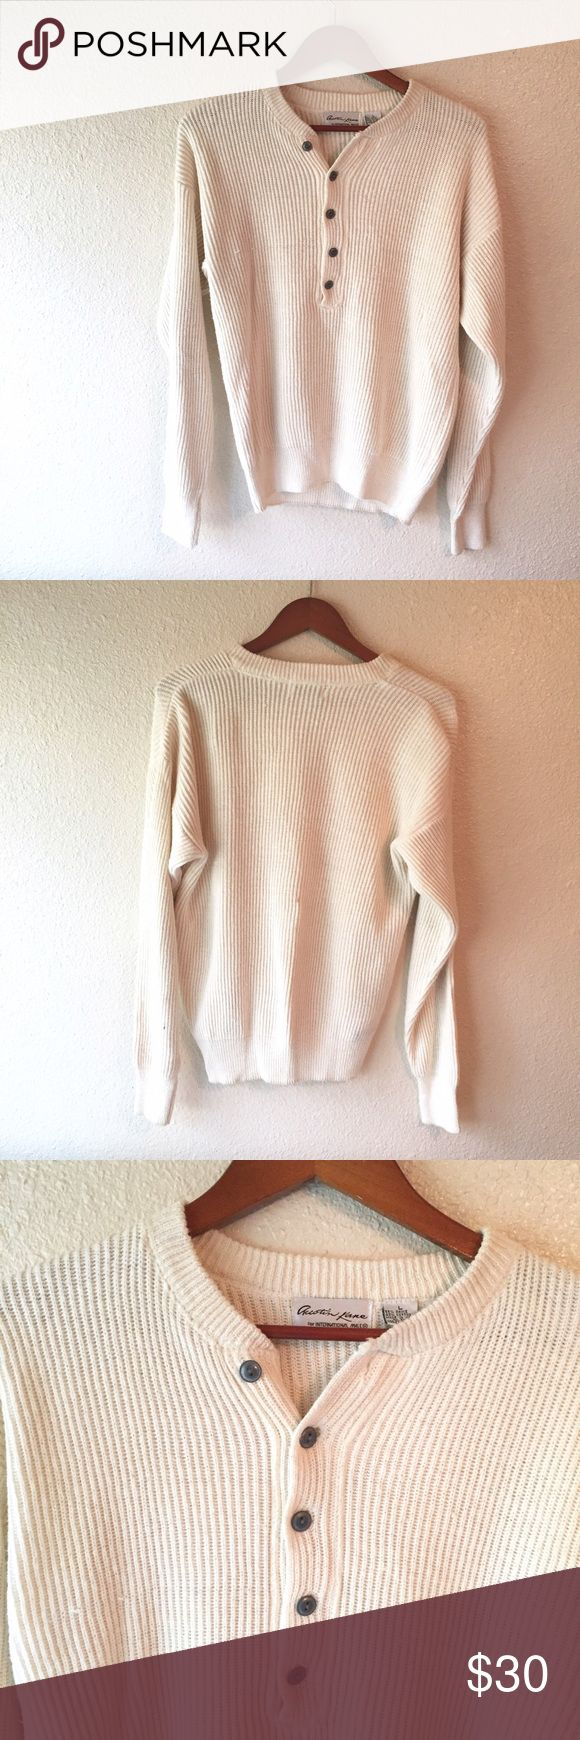 Vintage Austin Kane thick knit Henley sweater L Austin Kane brand. Size large. Very handsome shirt that is made of nice thick Knit material. Creamy white color with gray buttons. Really shows off muscles! There is a small dot on the back that I have shown a photo of. In otherwise good used condition. Vintage sweater! Vintage Sweaters